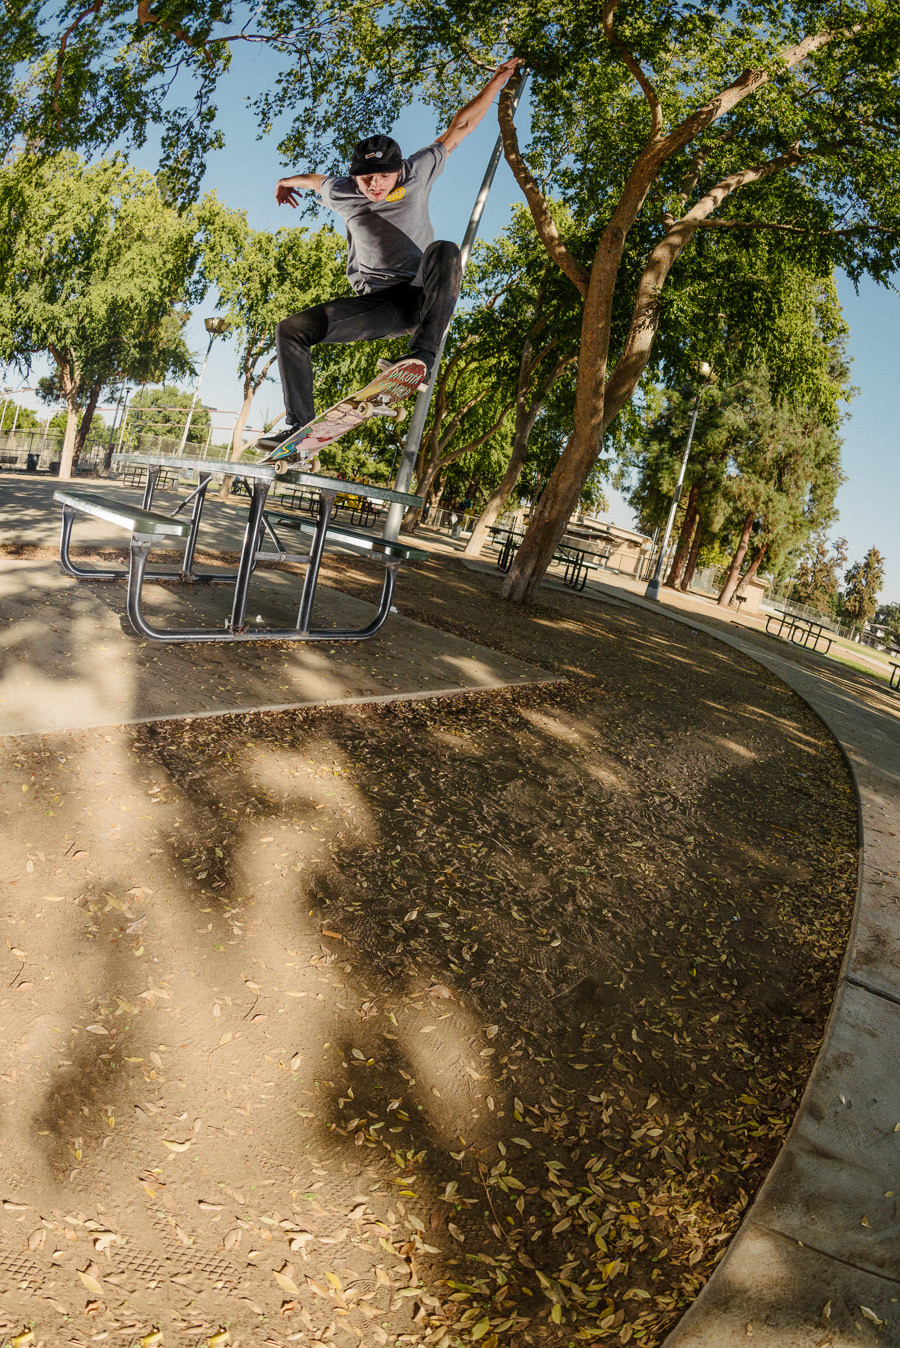 Leo Romero 50-50 gap out / photo: mehring